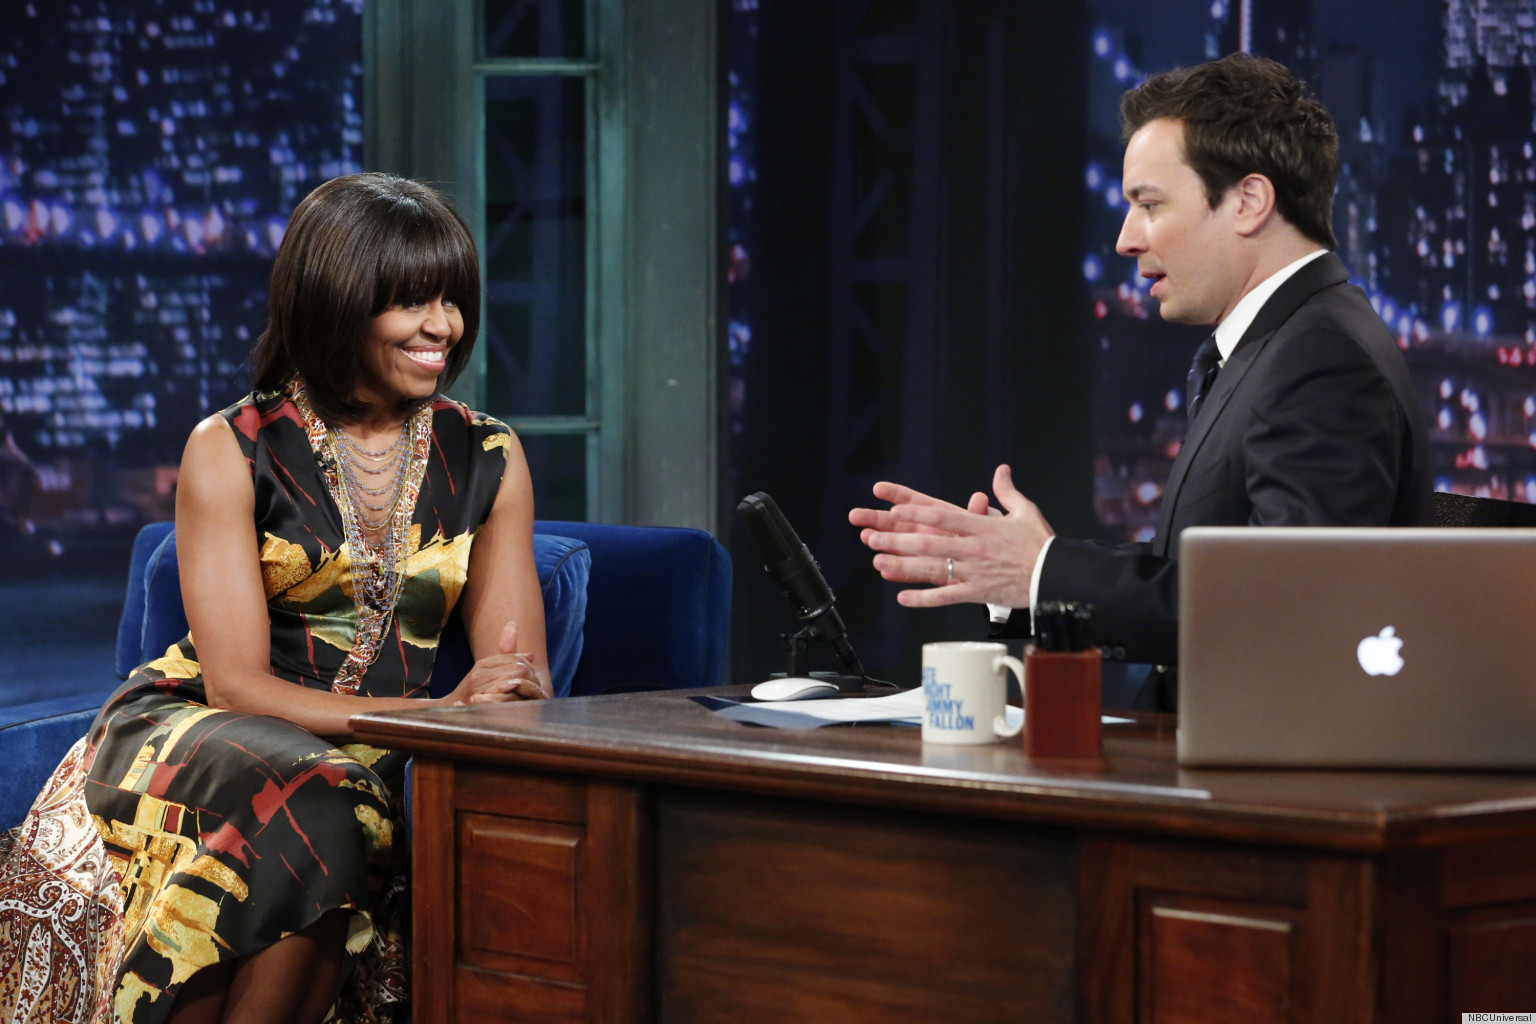 WATCH: Michelle Obama Talks Dates With The President On Jimmy Fallon